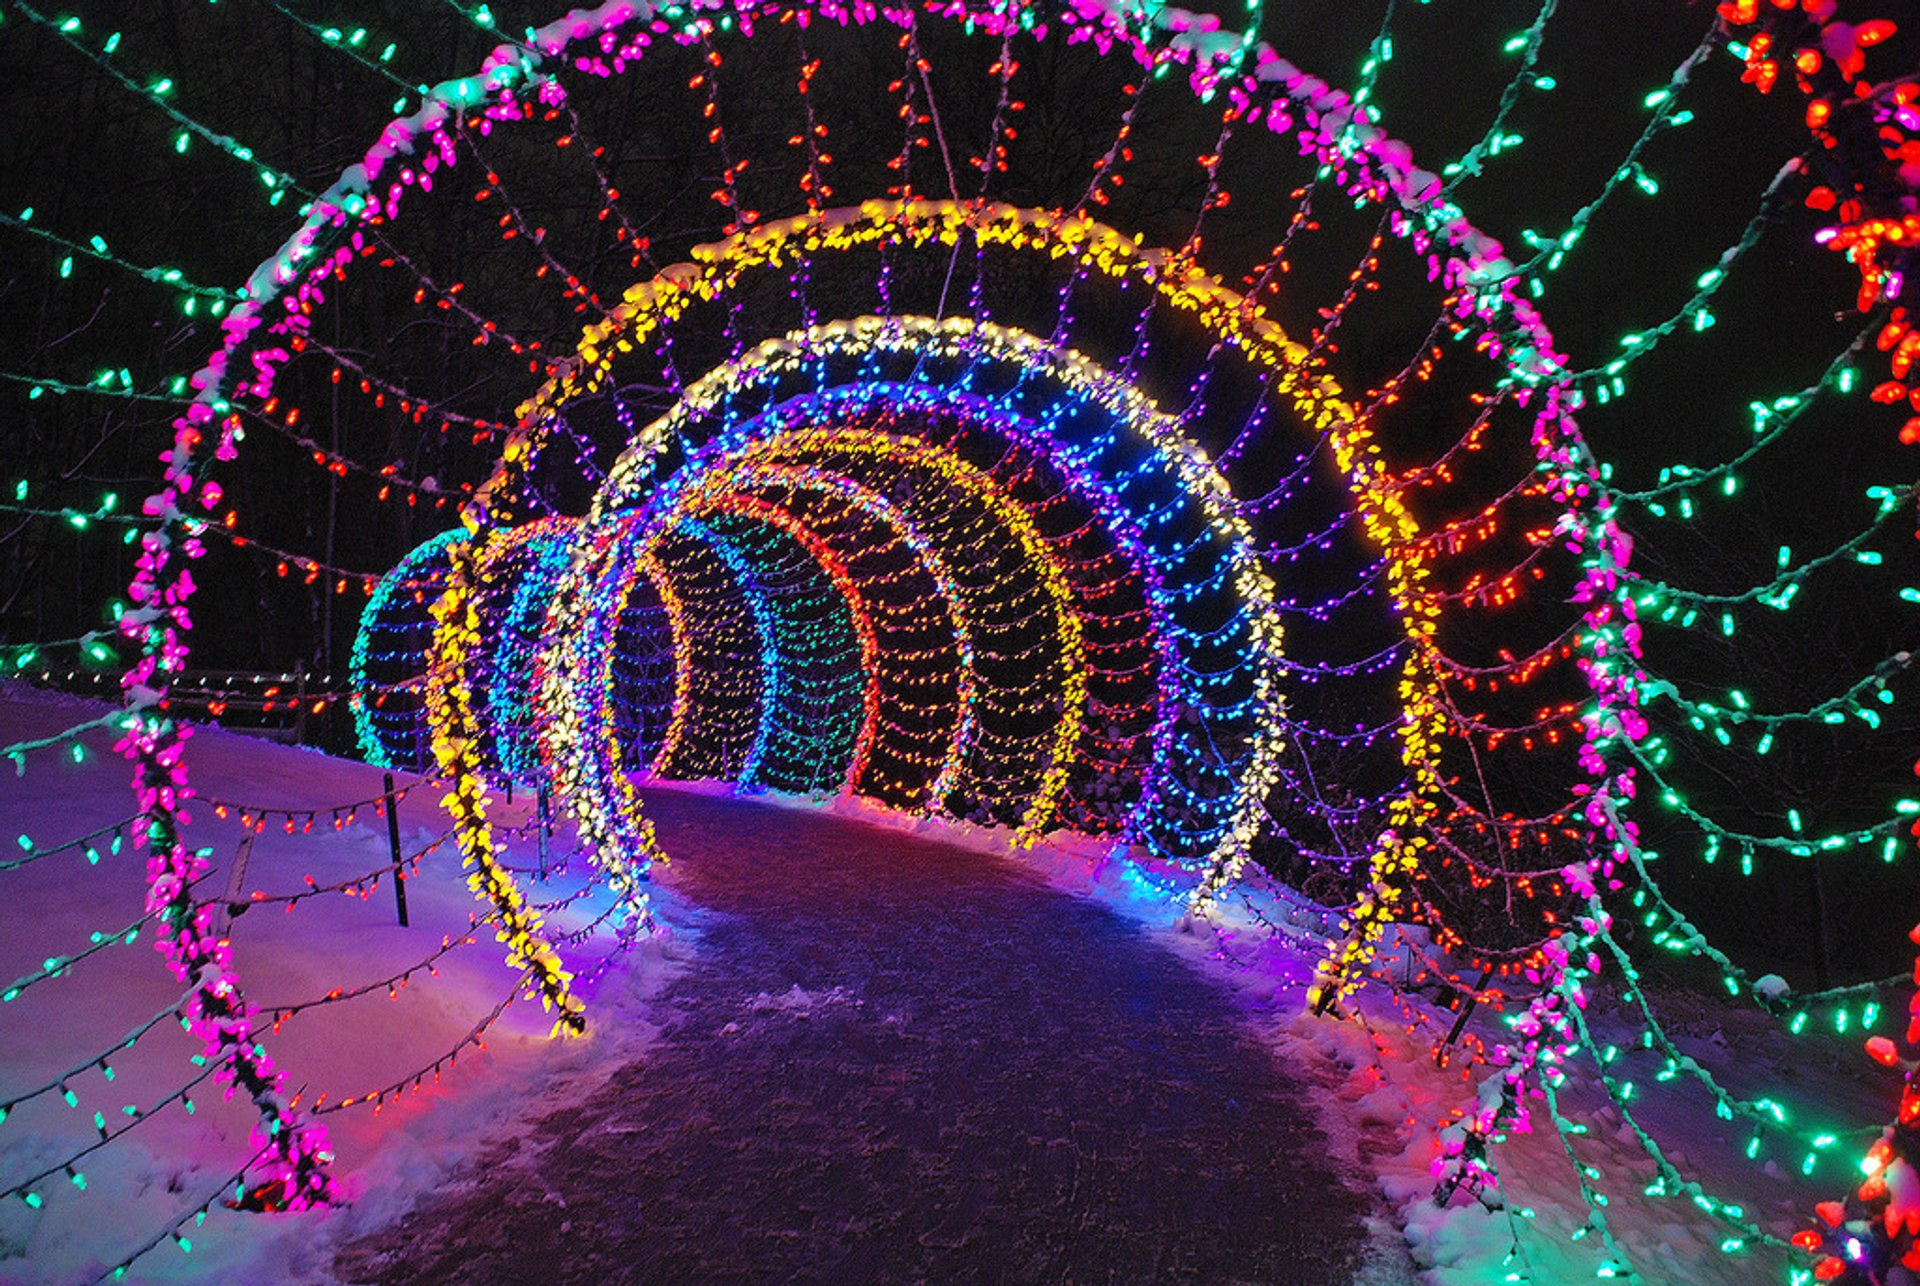 Garden of Lights at Green Bay Botanical Garden in Midwest 2020 - Best Time